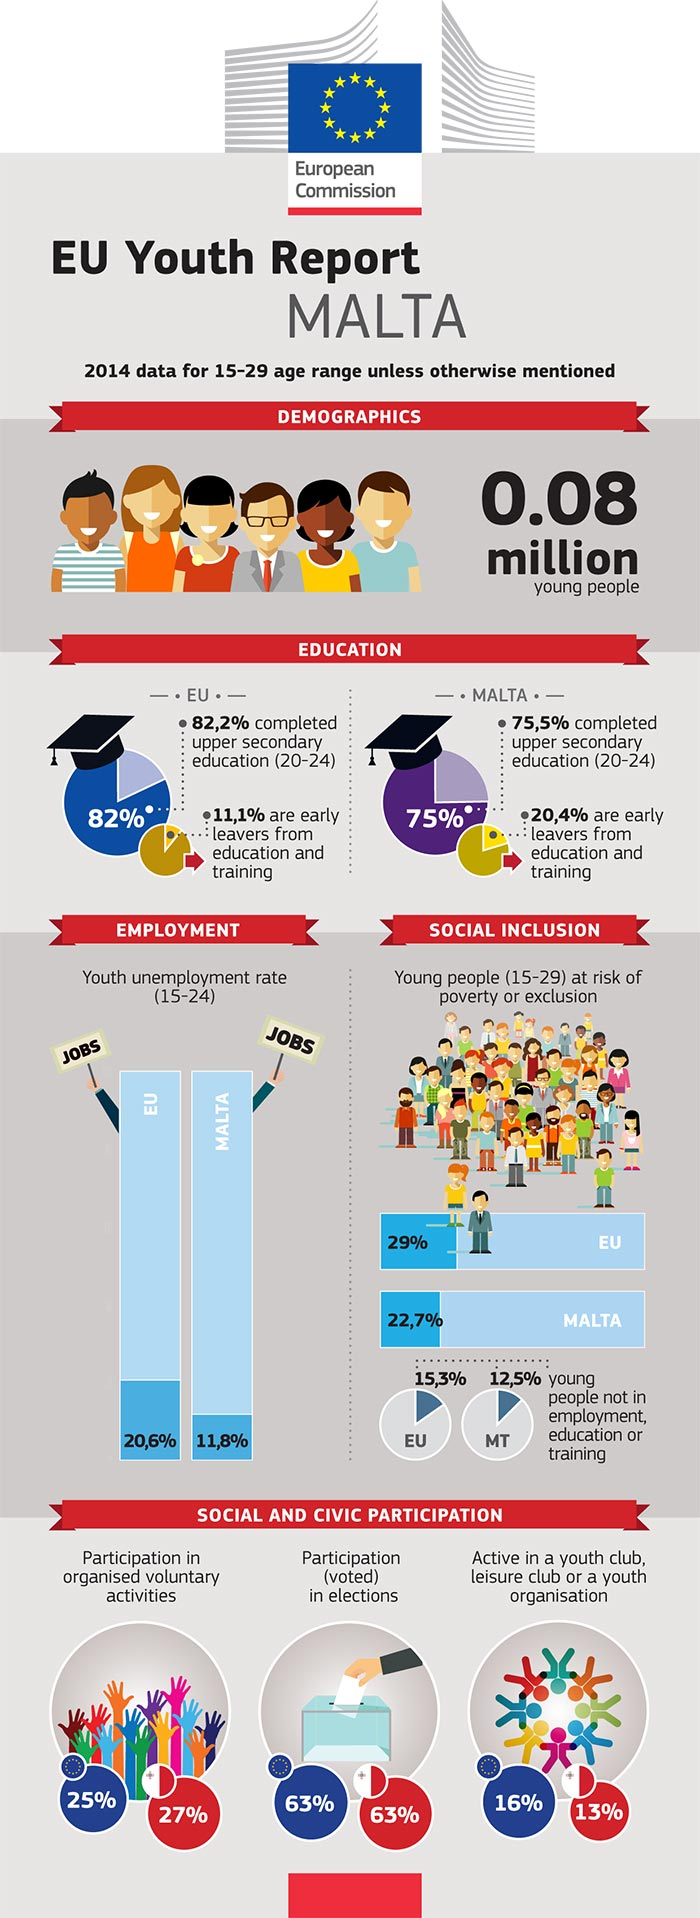 EU Youth Report infographic: Malta